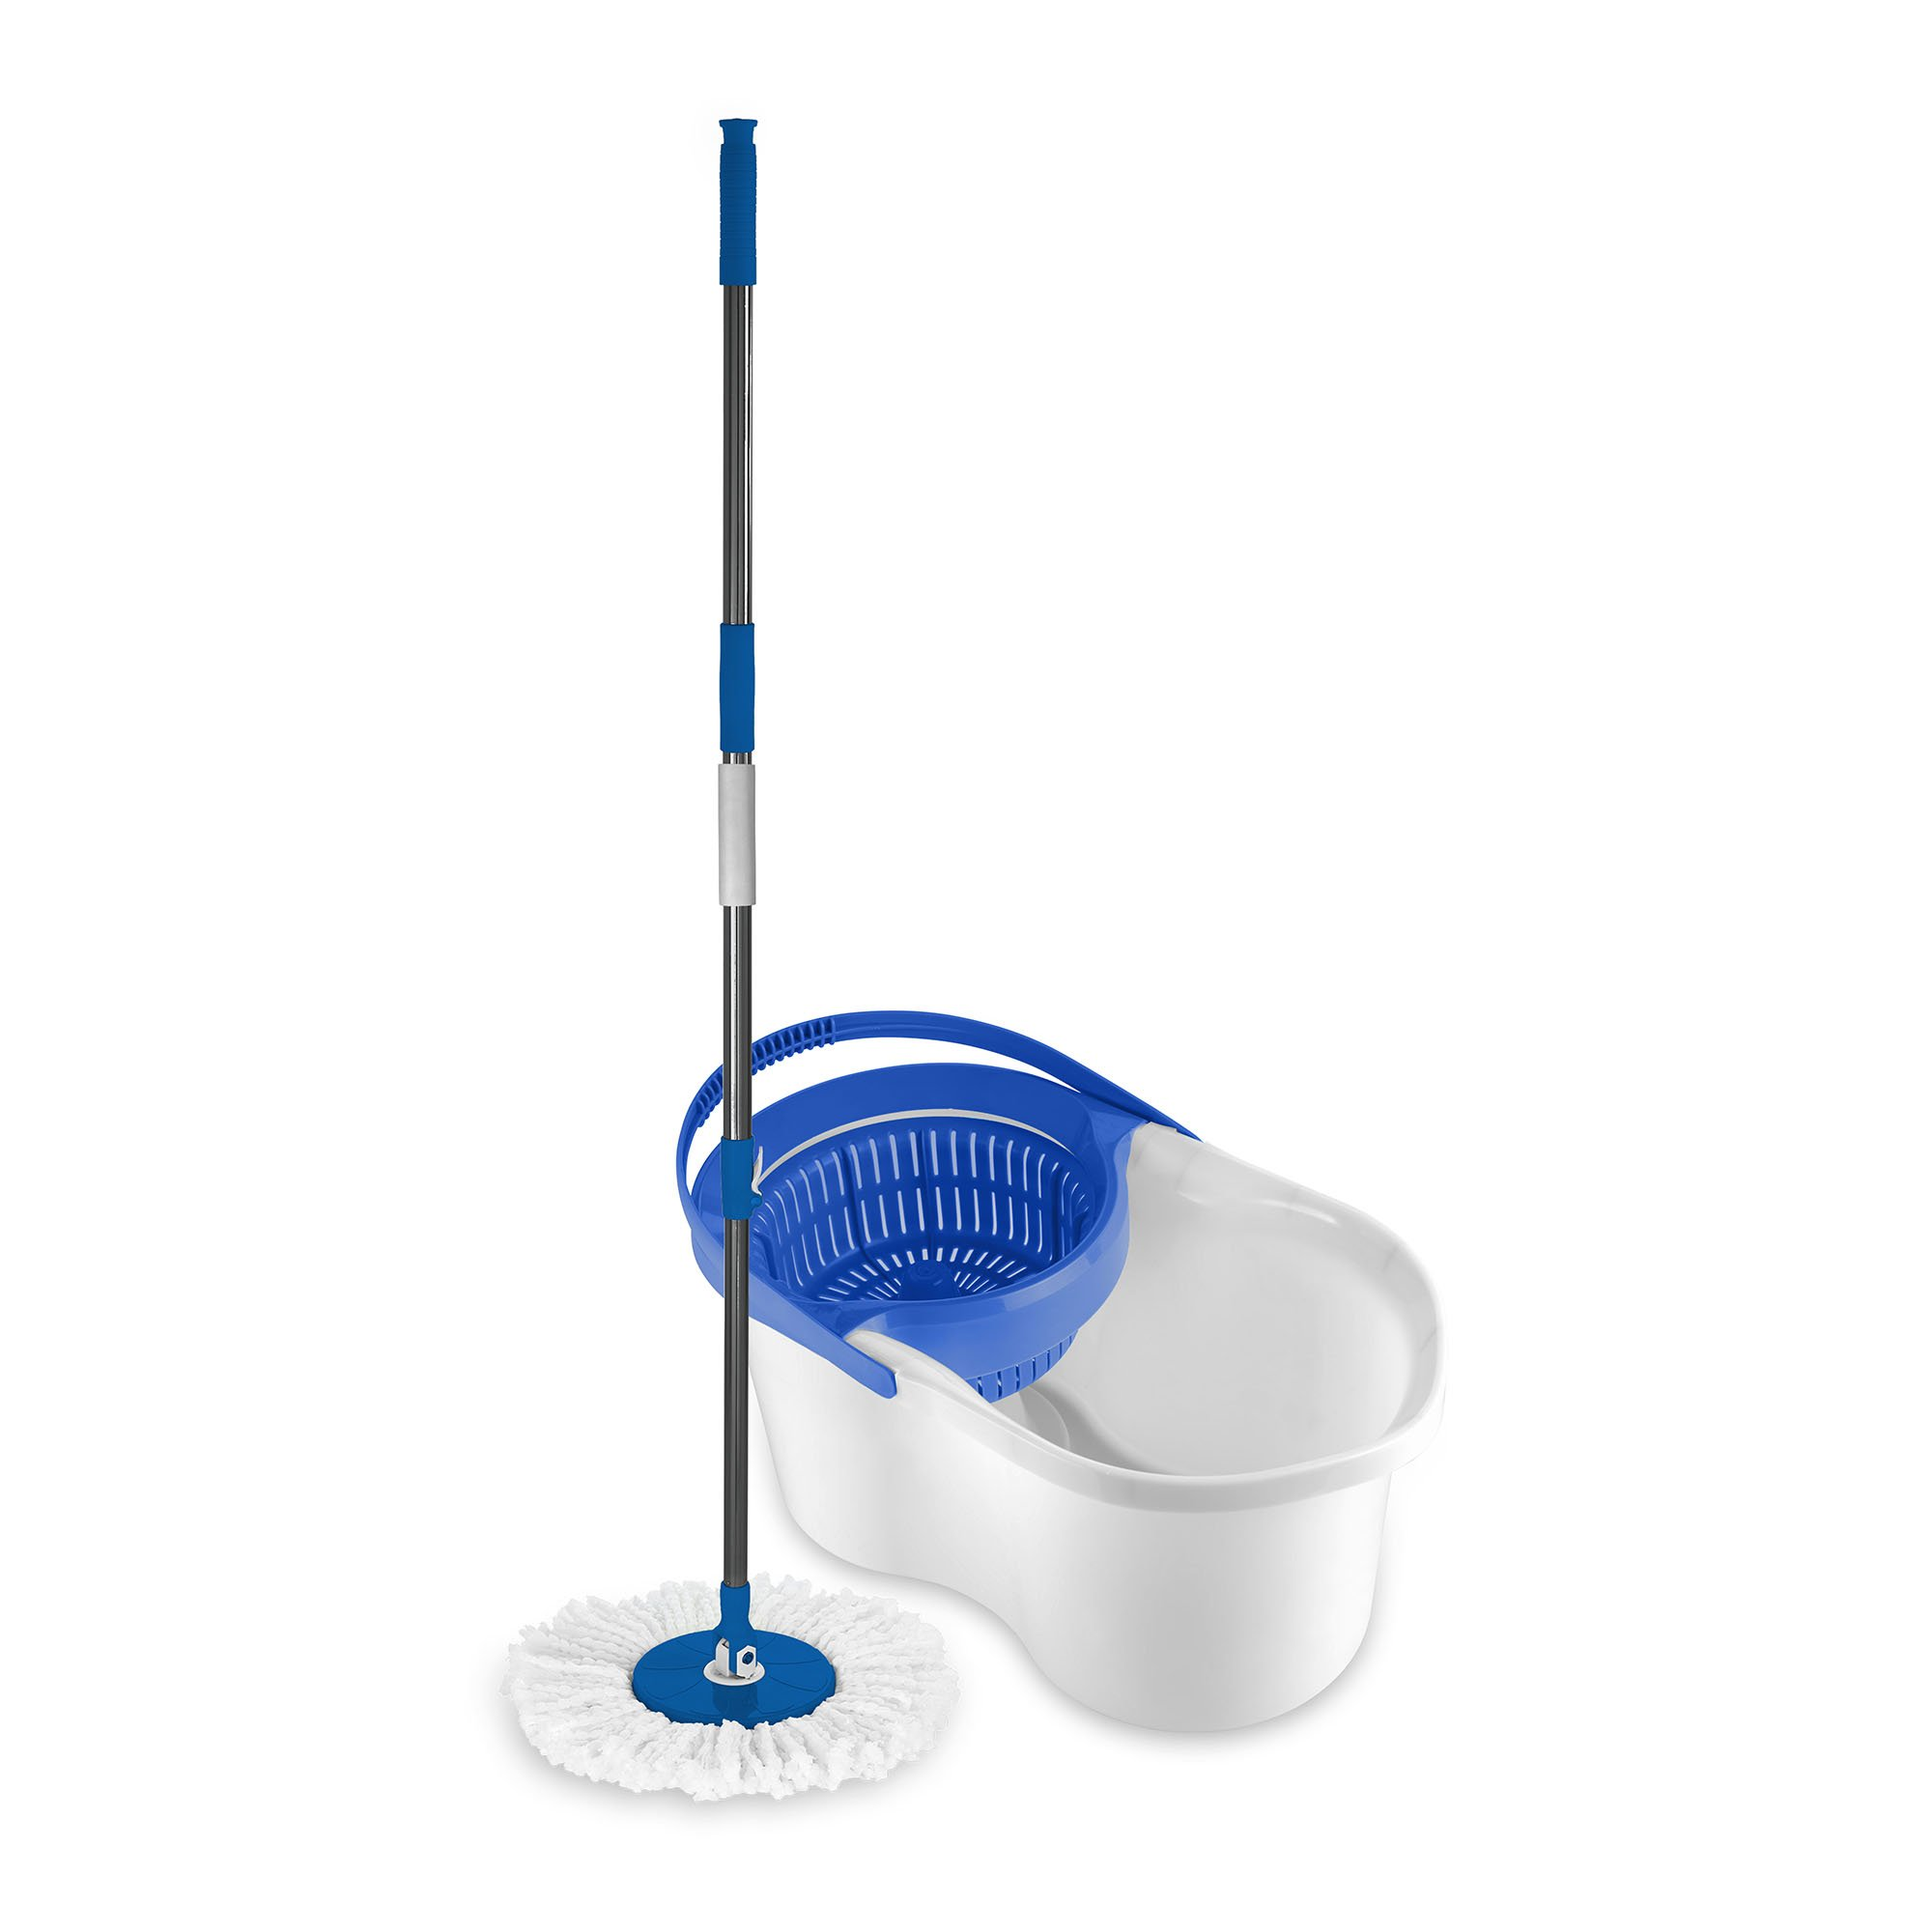 Clorox 626000 Spin Dry Mop by Clorox